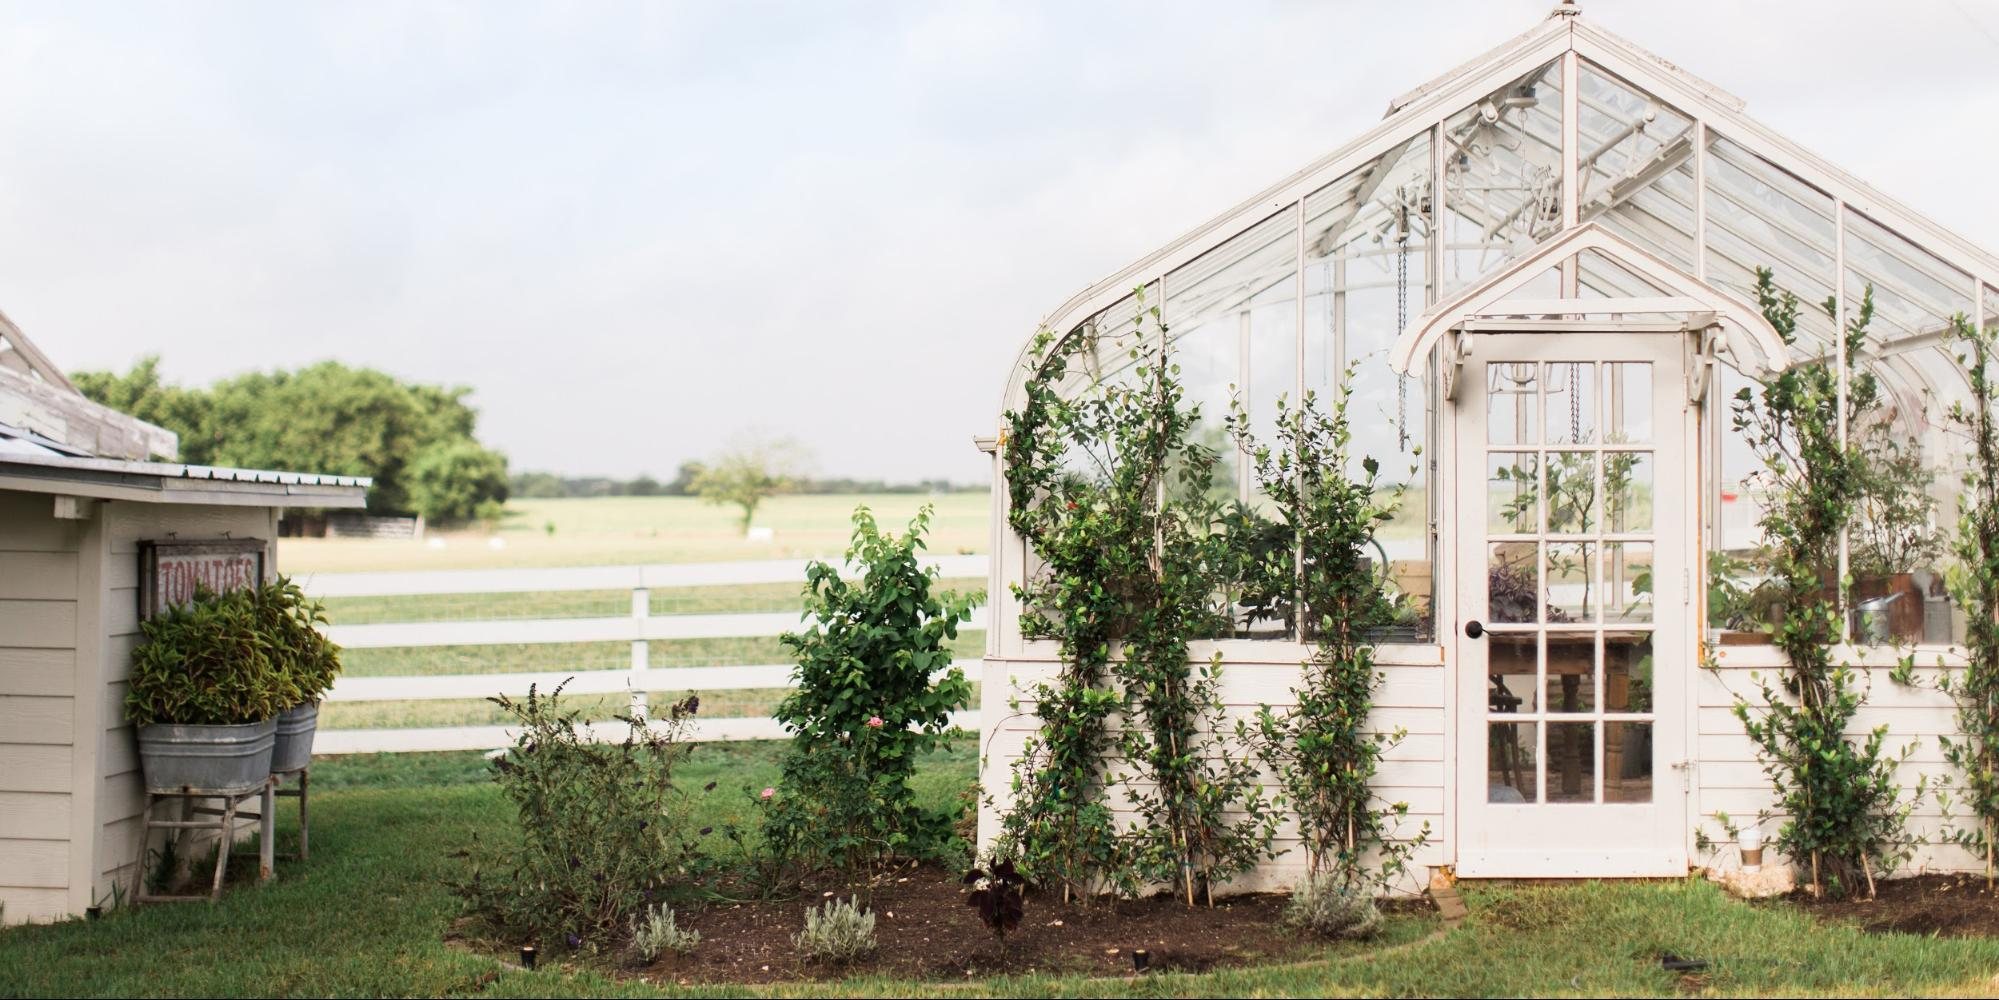 Want A Backyard Greenhouse Like Joanna Gaines? Here's How